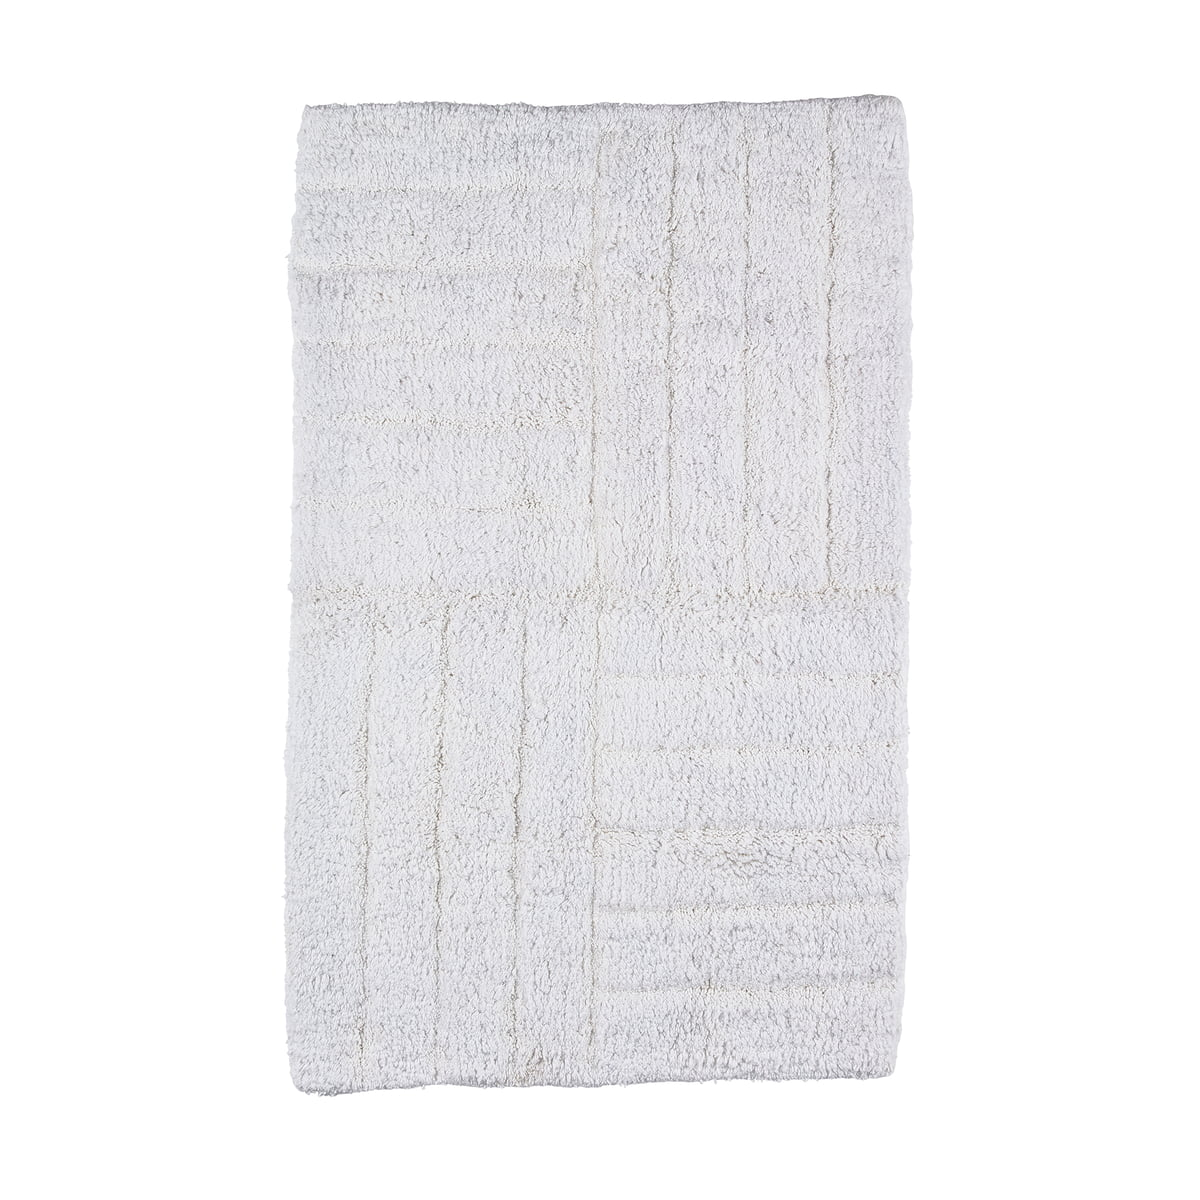 bath mats master in bathroom shower linen room by egyptian rubber cotton